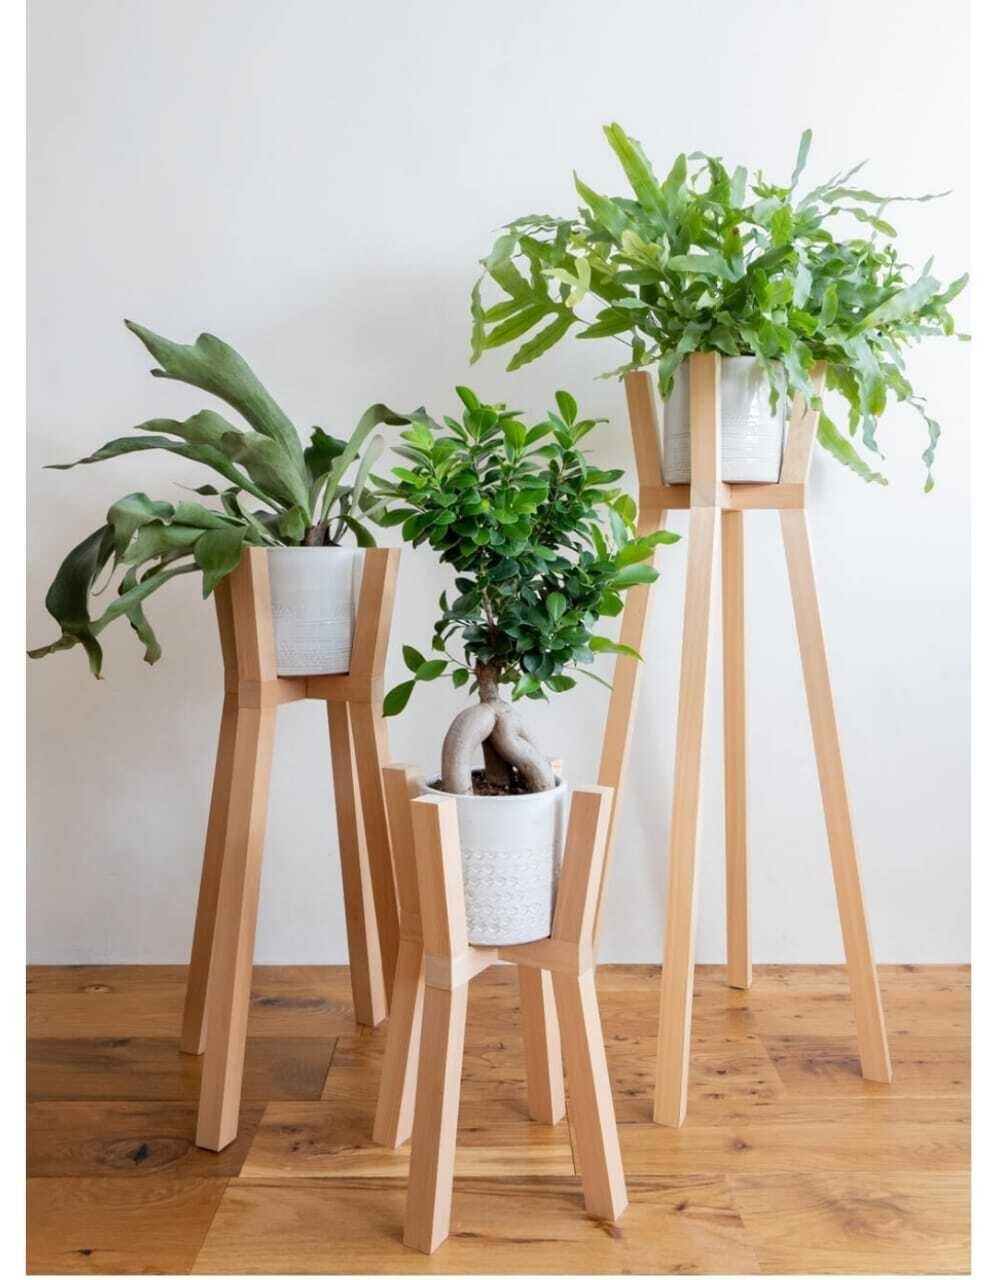 Wooden Stand for Plants/Planter for Home Garden Decoration in Beige- Set of 3